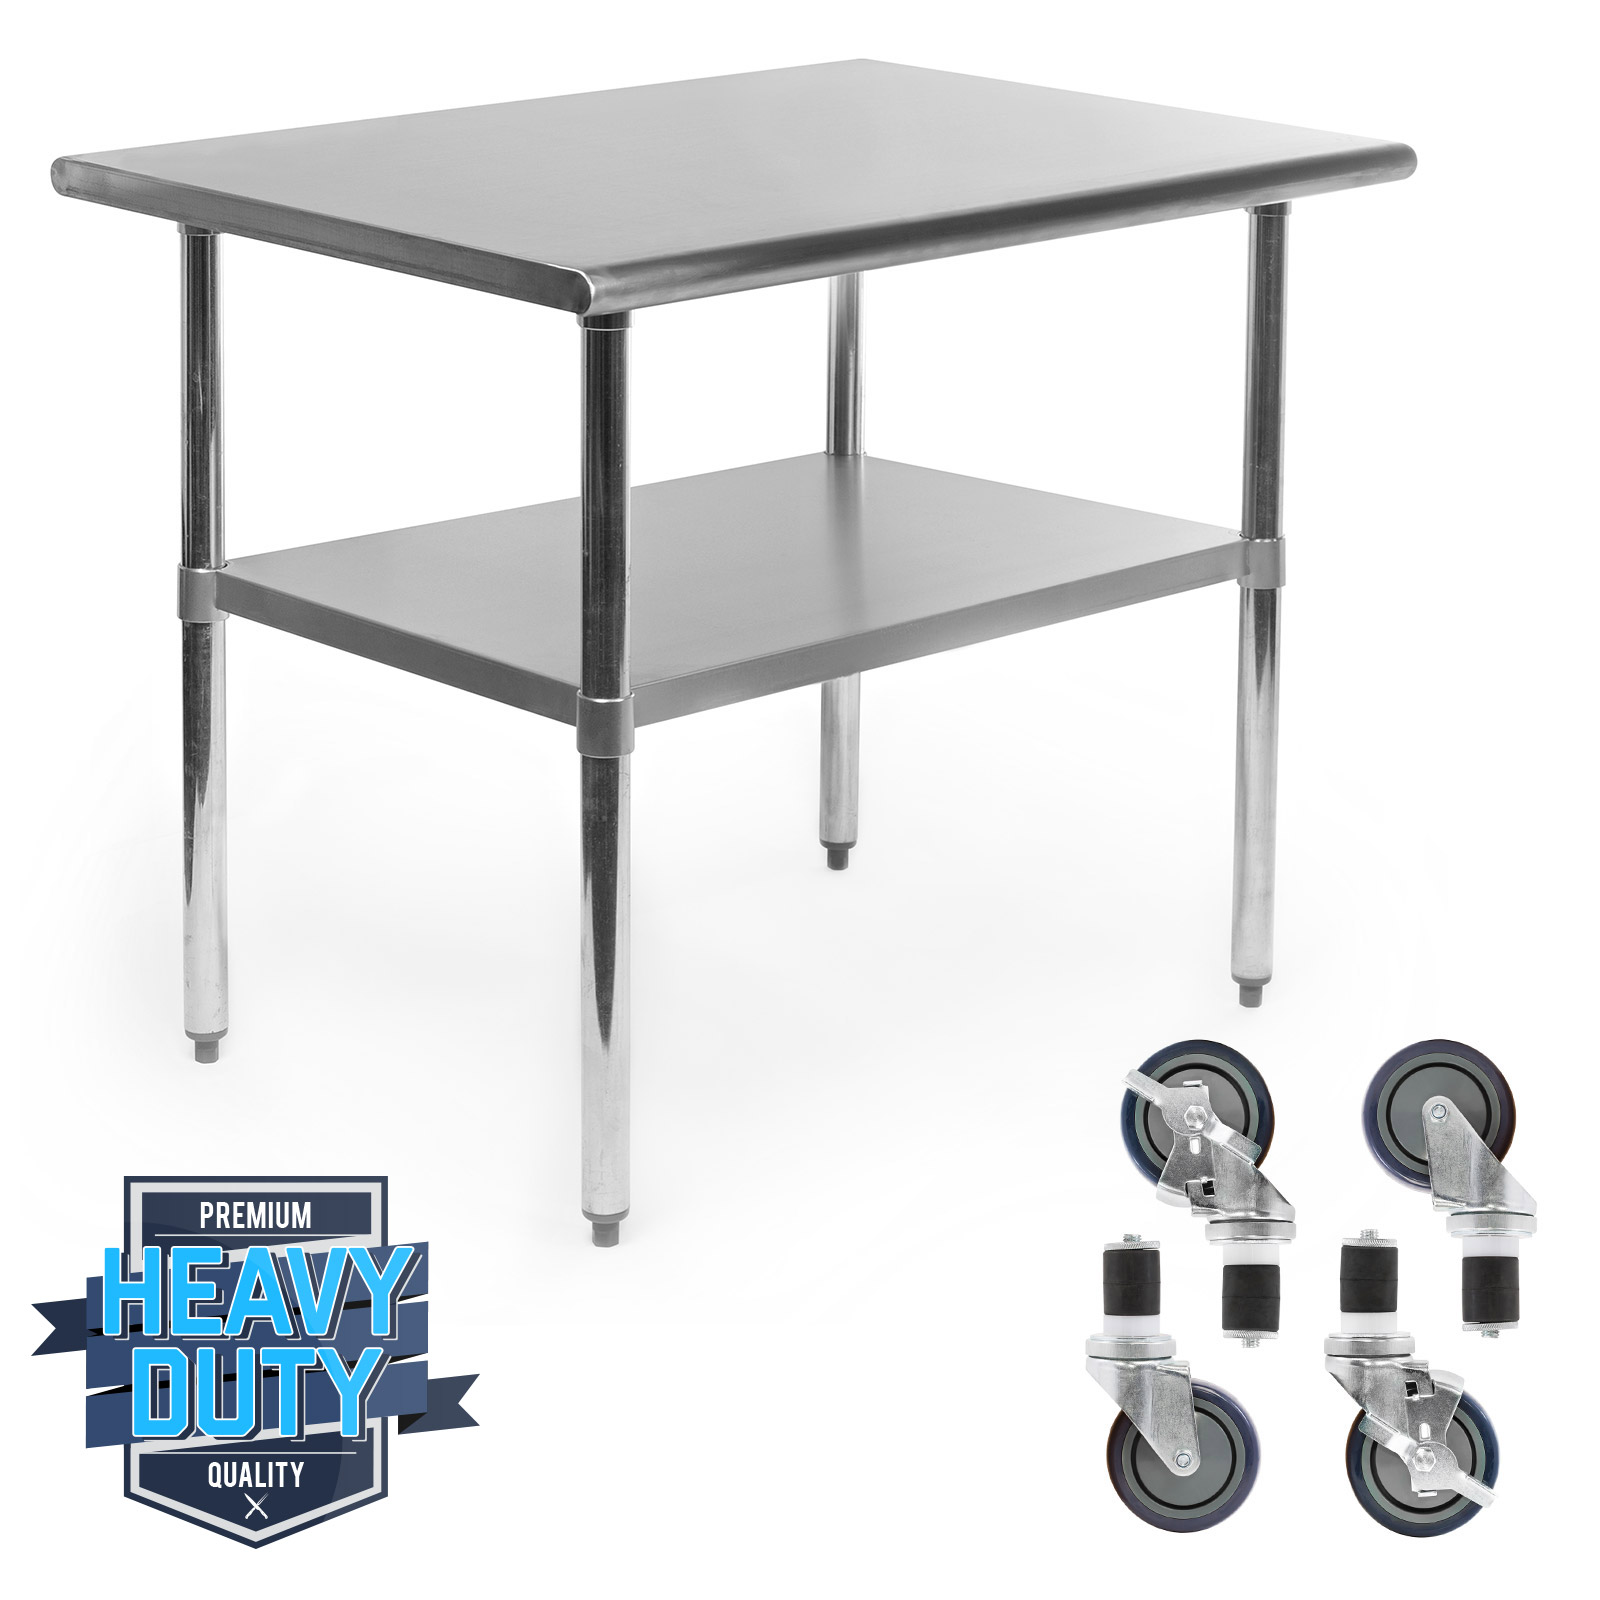 """Kitchen Table With Food: Stainless Steel Commercial Kitchen Work Food Prep Table W/ 4 Casters - 24"""" X 36"""" 700256575443"""